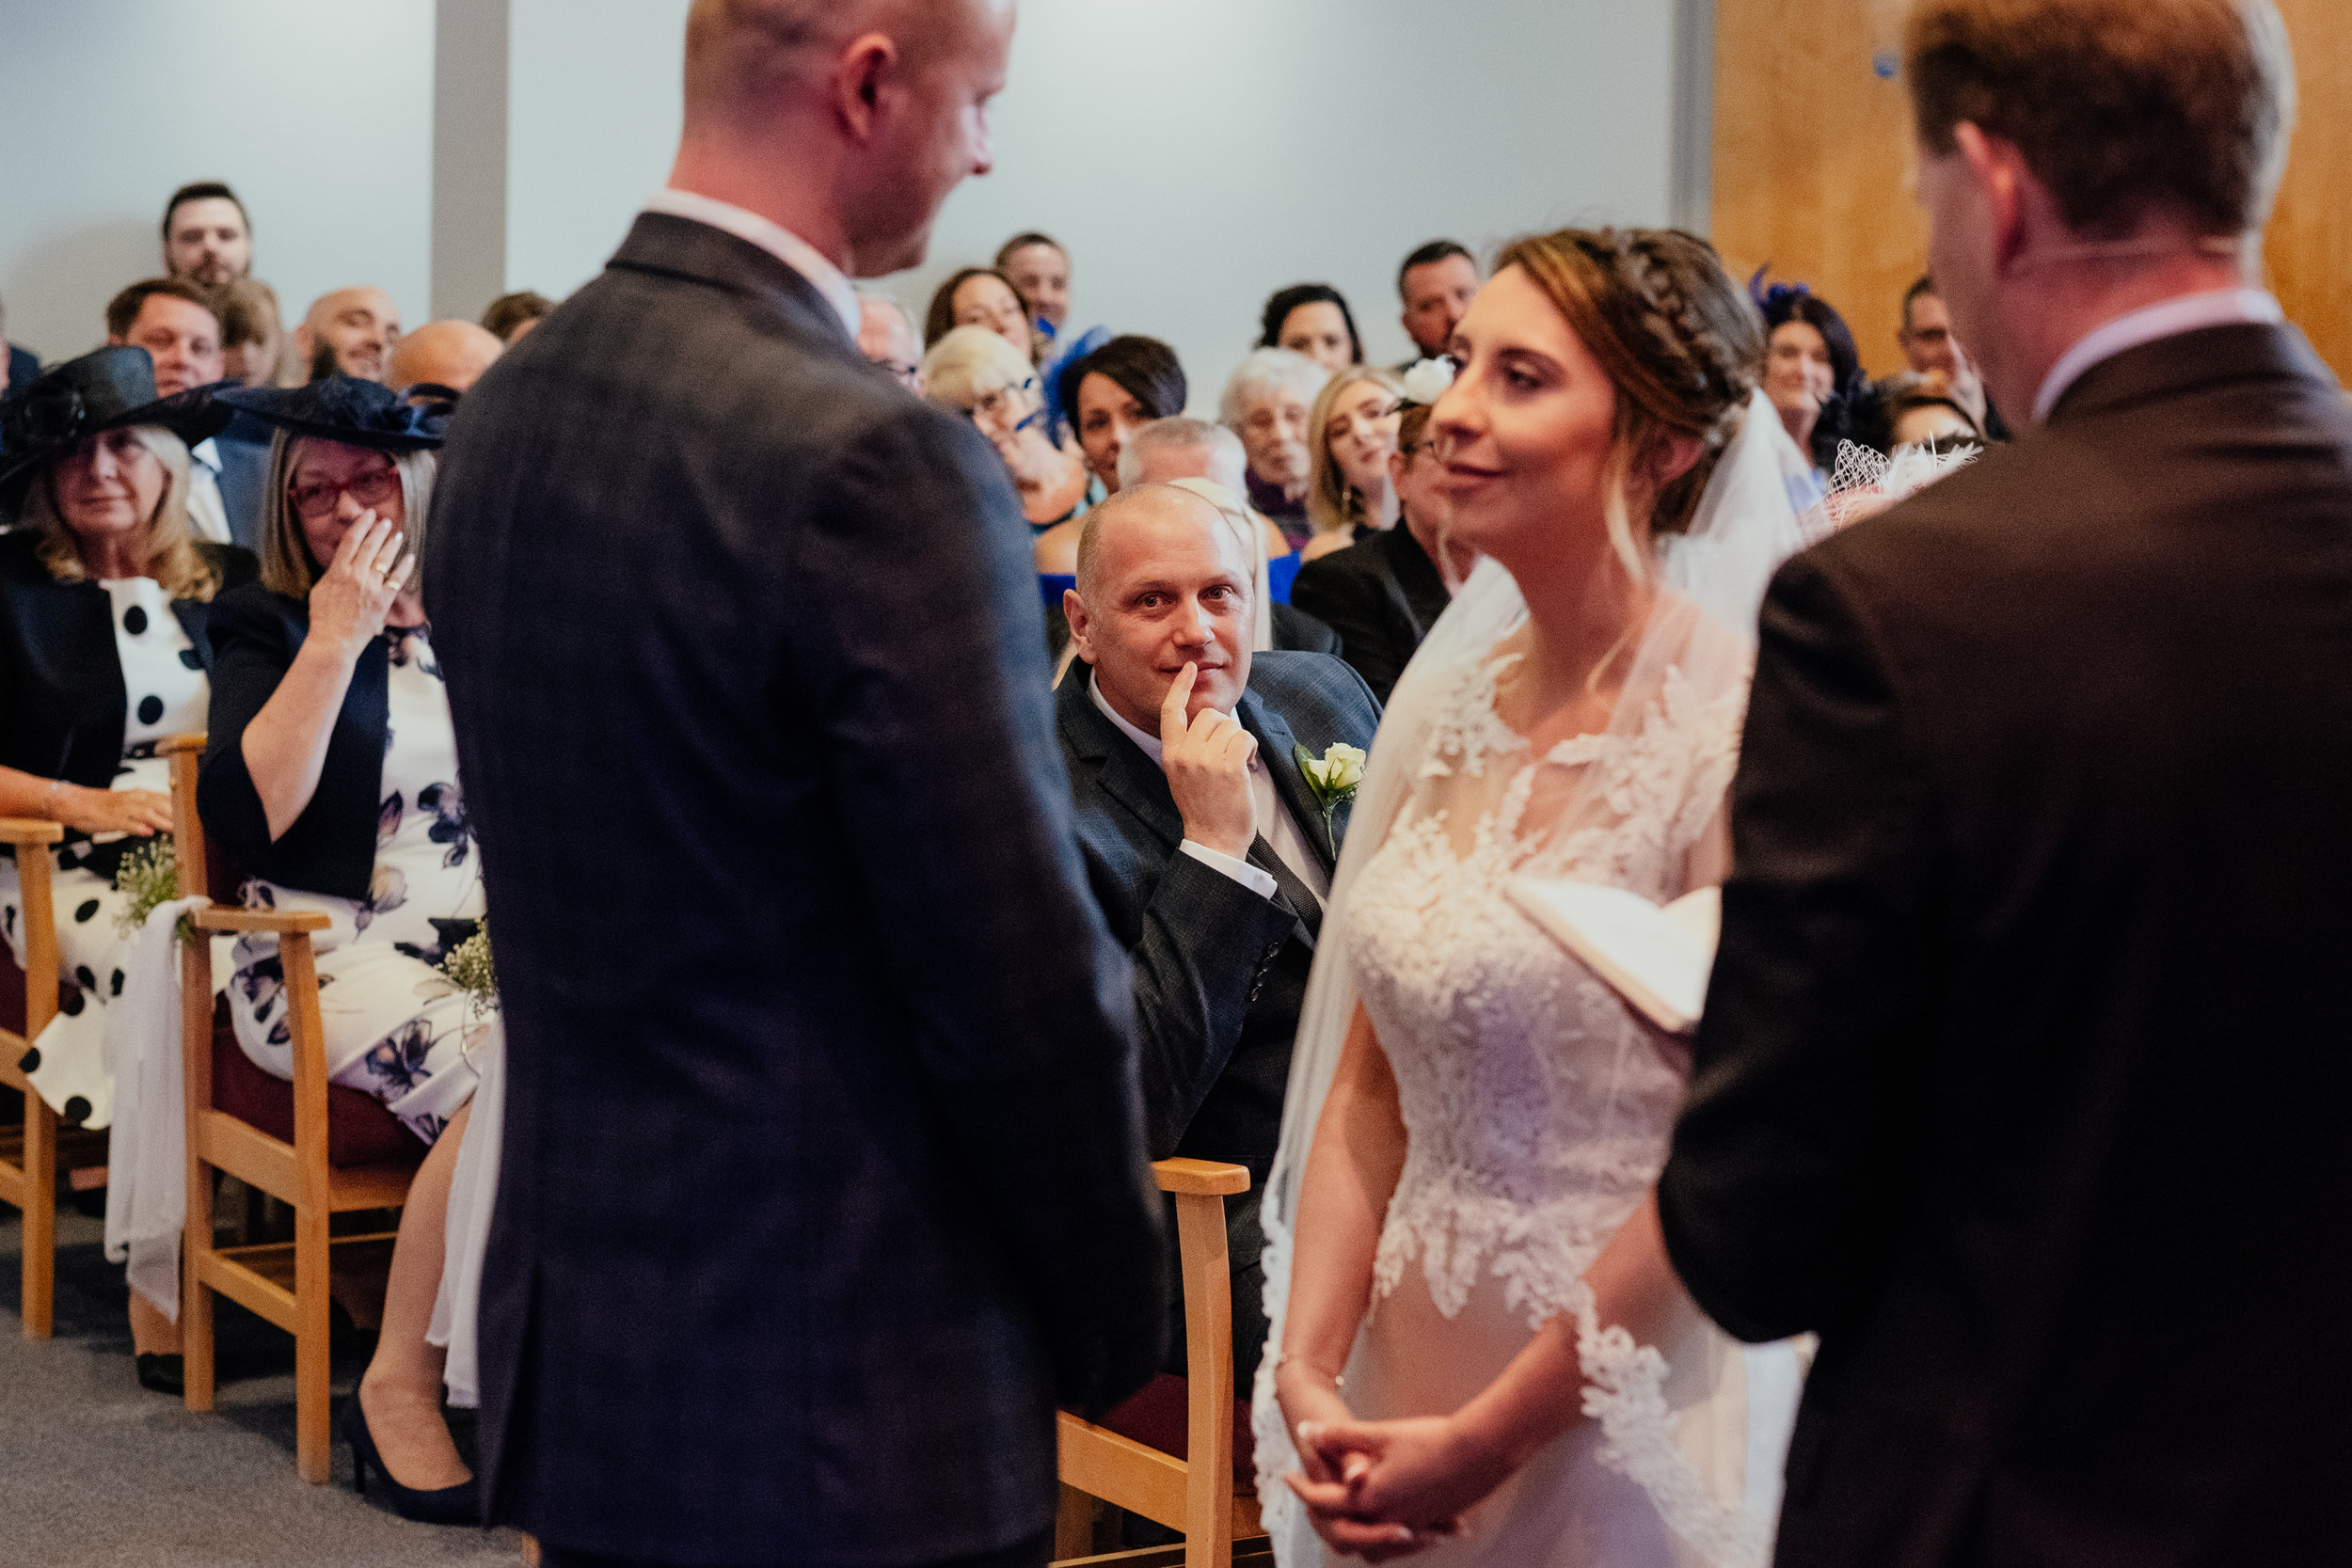 Bride and Groom exchange vows as Father of the Bride sheds a tear behind them